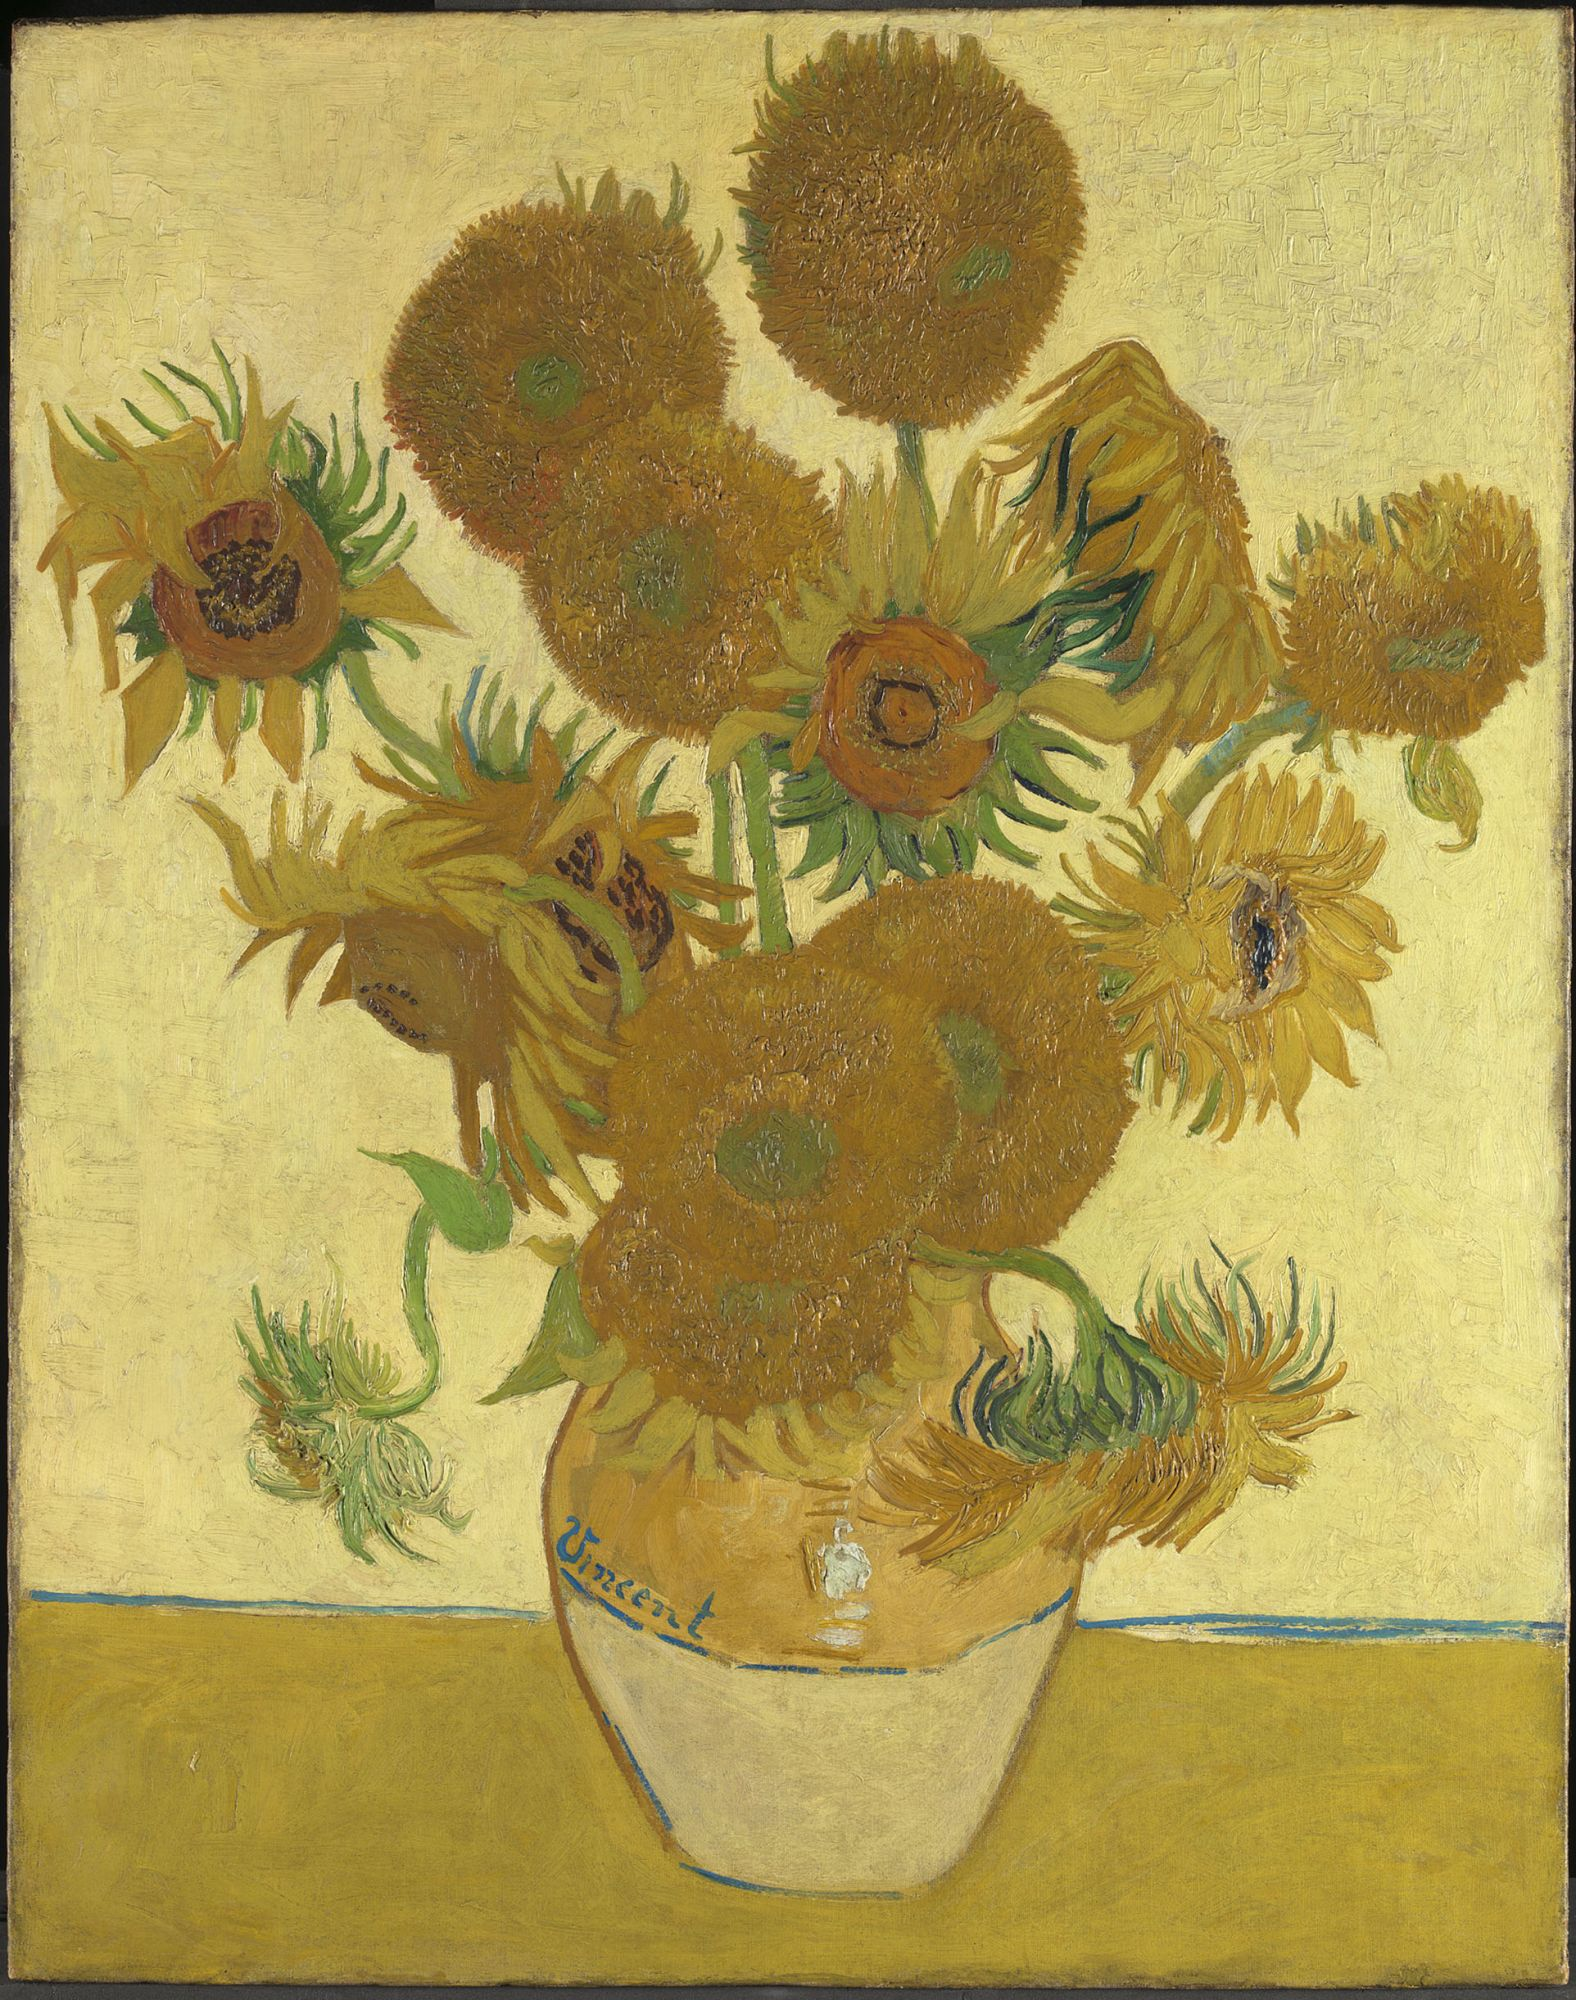 See Van Gogh's 'Sunflowers' In Japan During The Tokyo 2020 Olympics